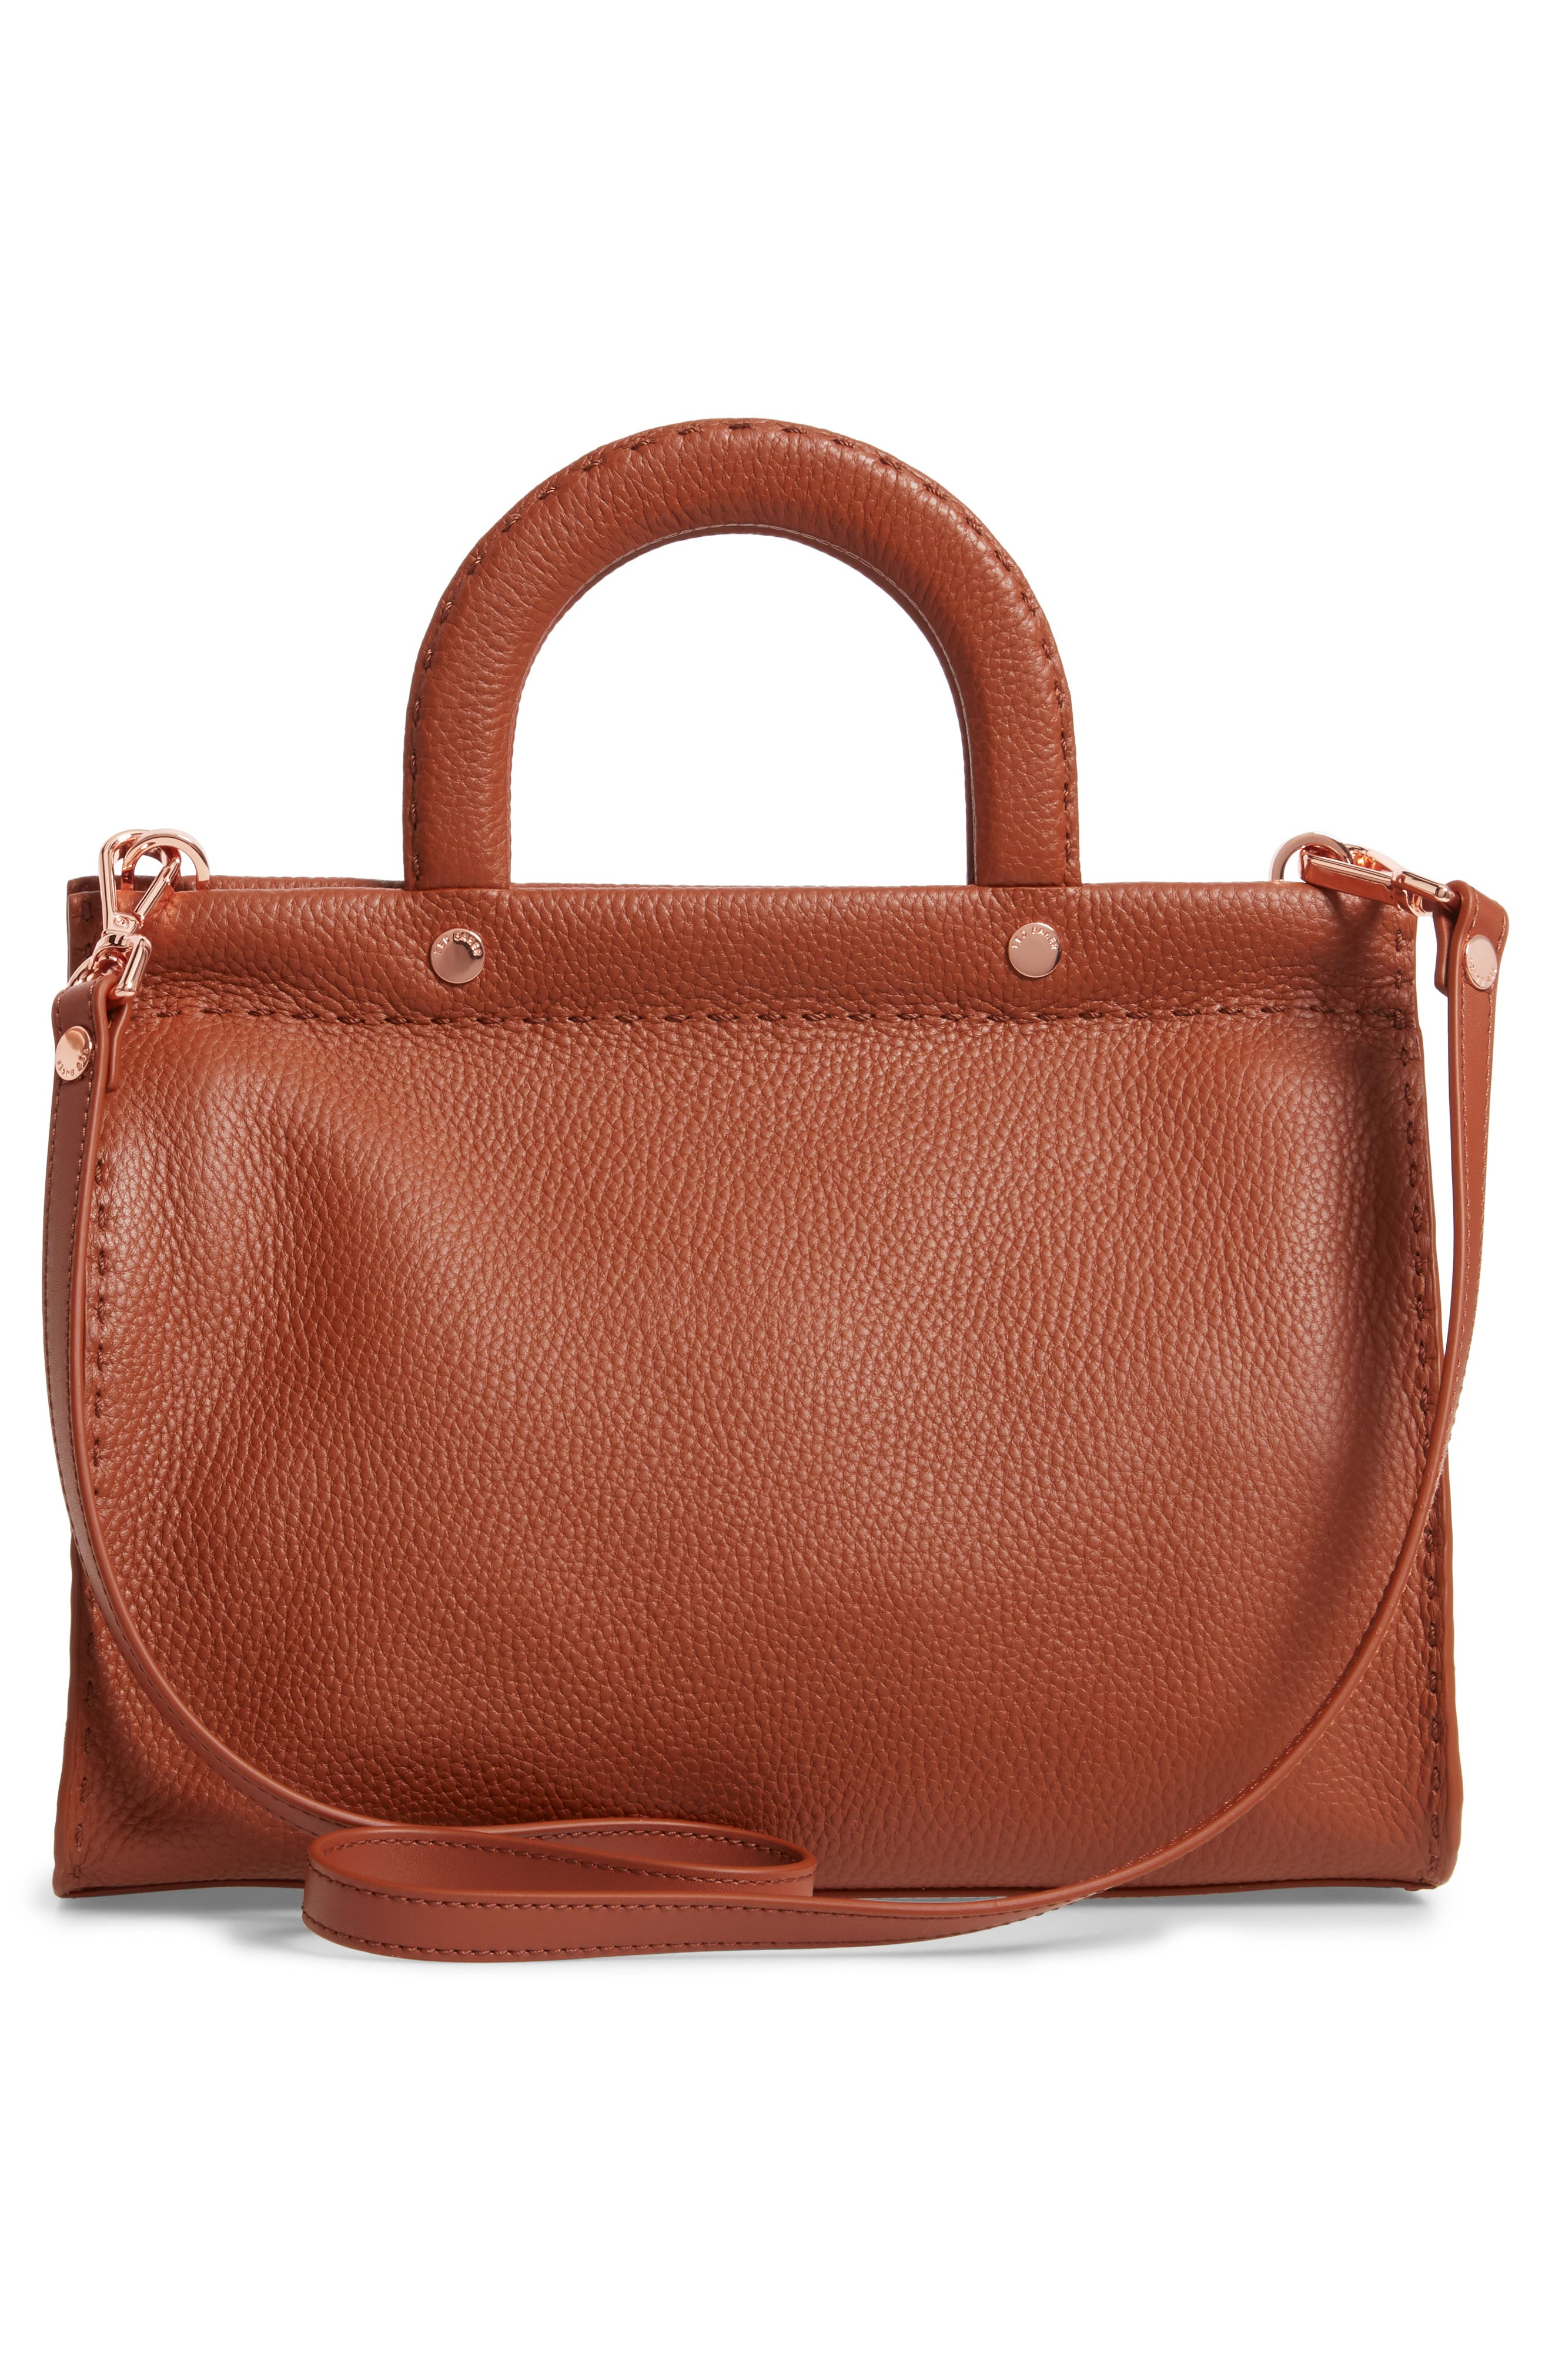 TED BAKER LONDON,                             Monicaa Leather Satchel,                             Alternate thumbnail 3, color,                             BROWN